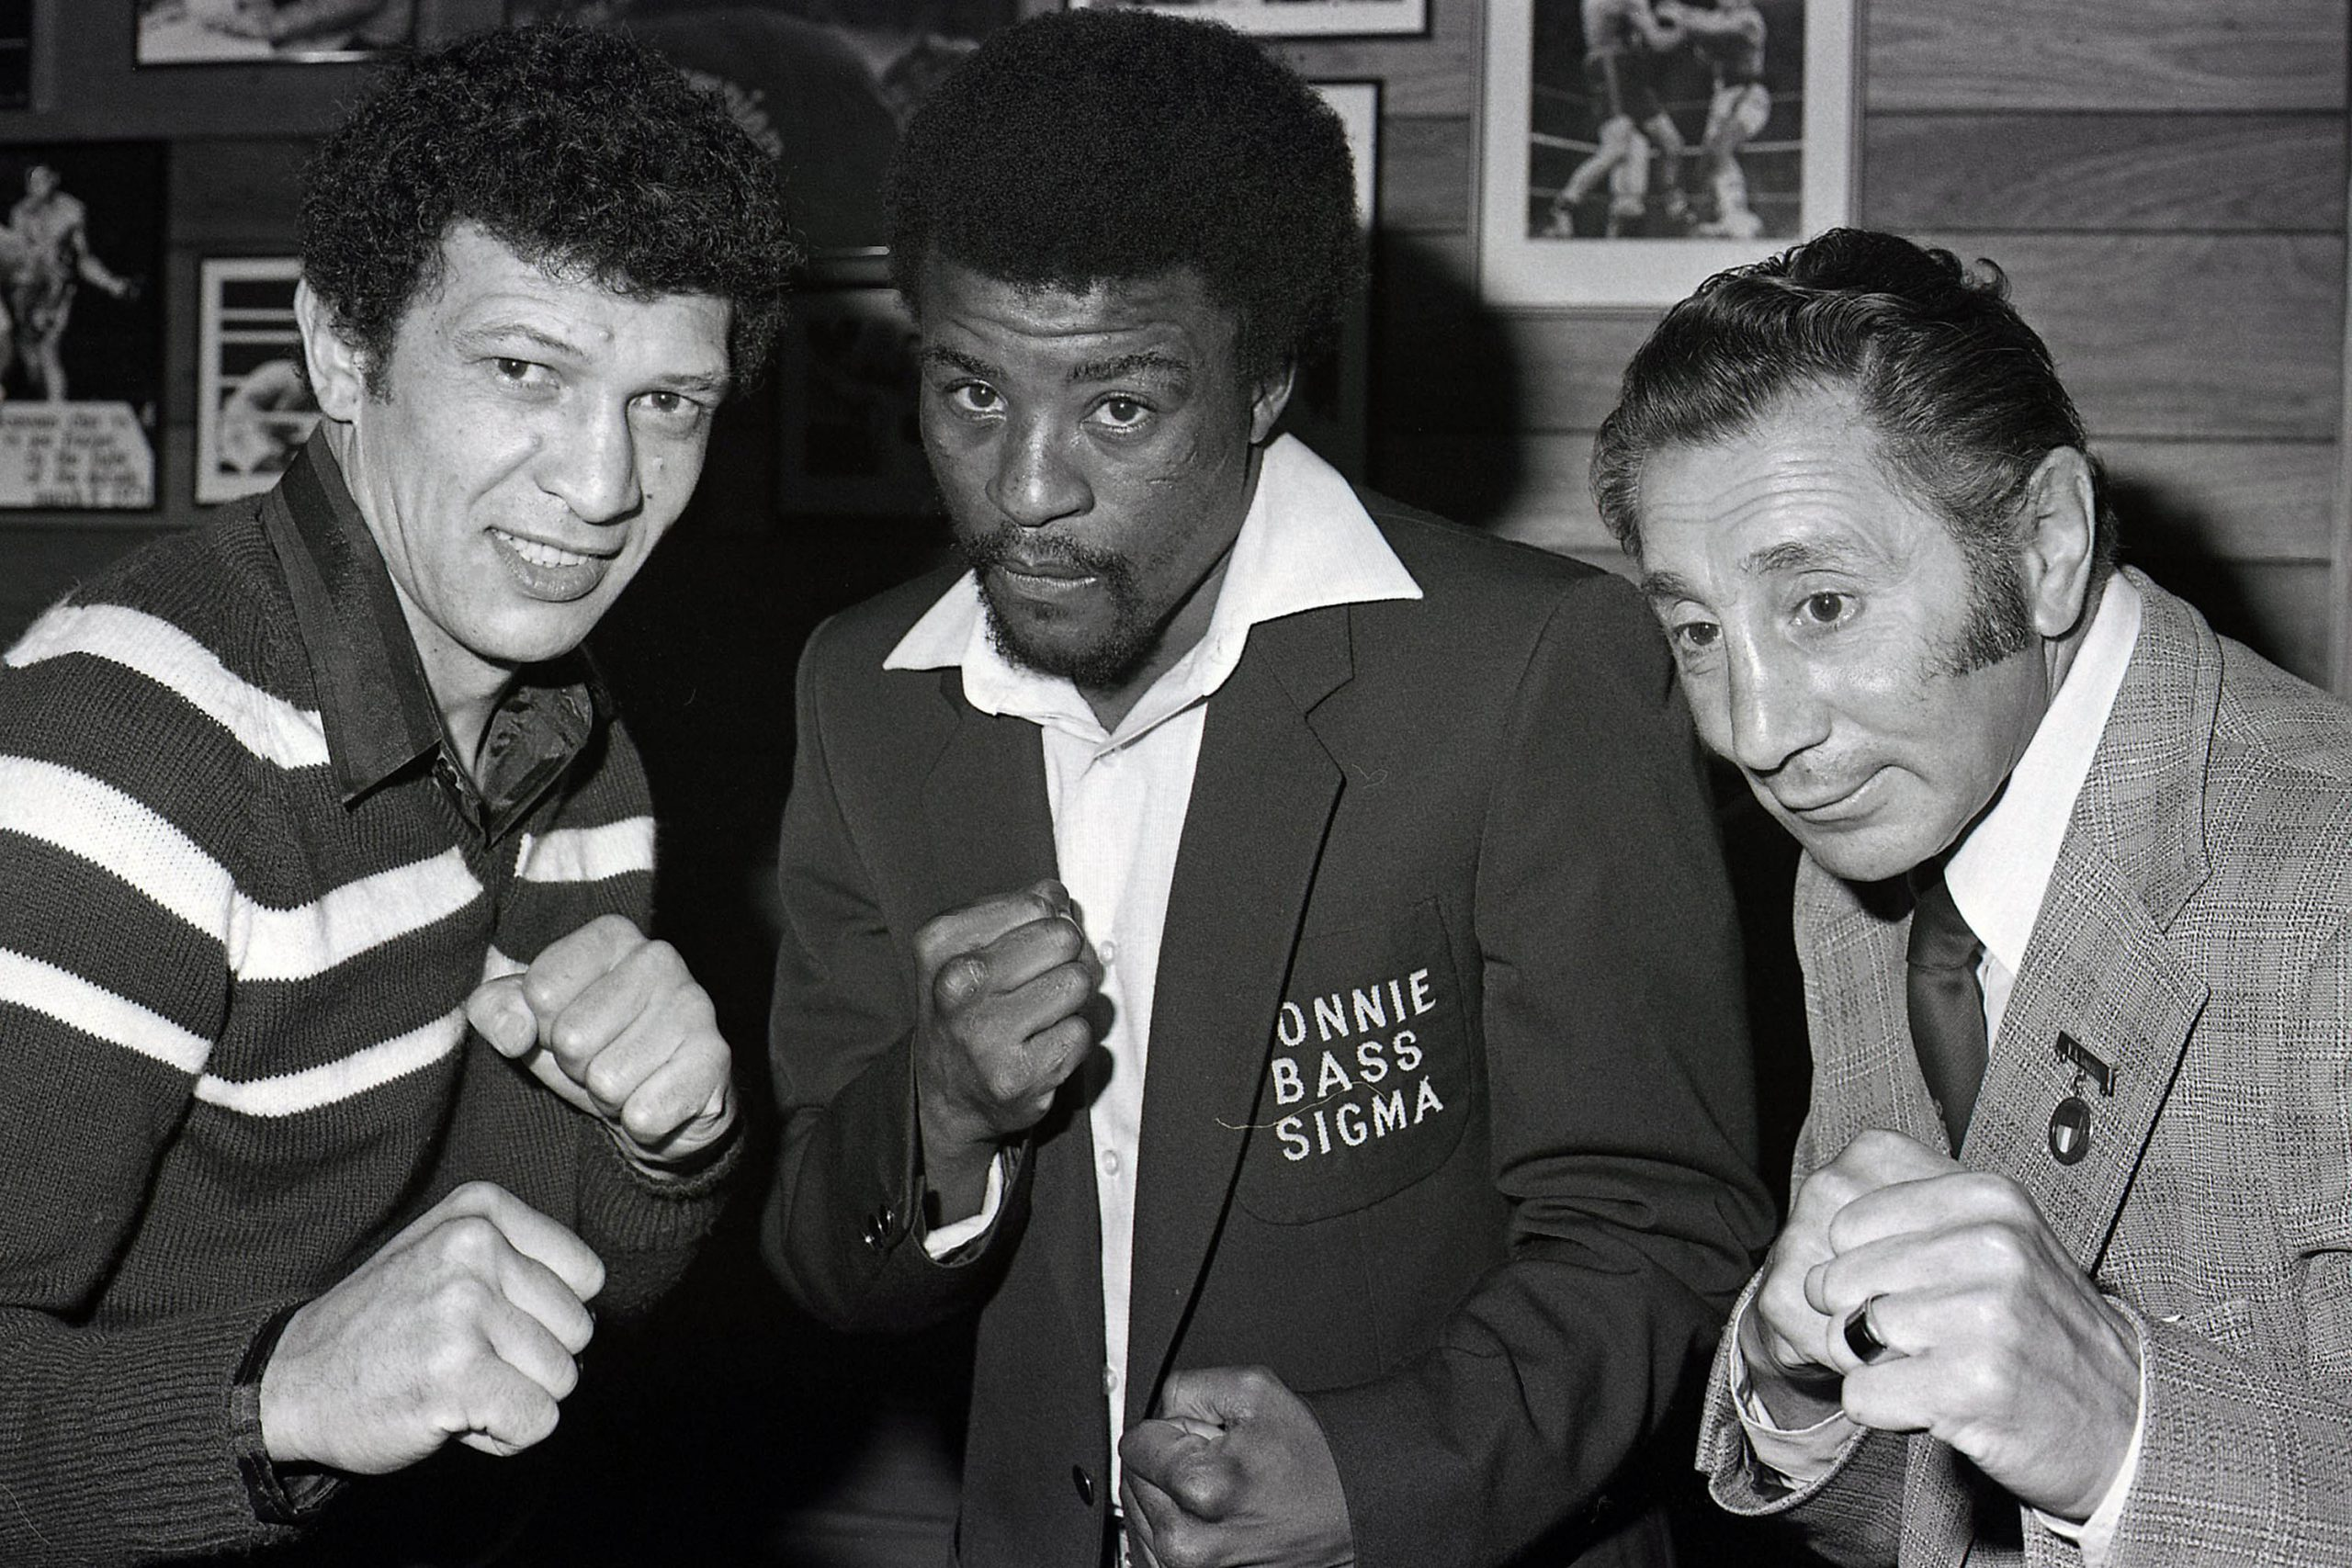 Undated: From left, boxers Arnold Taylor, Peter Mathebula and Vic Toweel during a sports event in South Africa. (Photograph by Wessel Oosthuizen/Gallo Images)